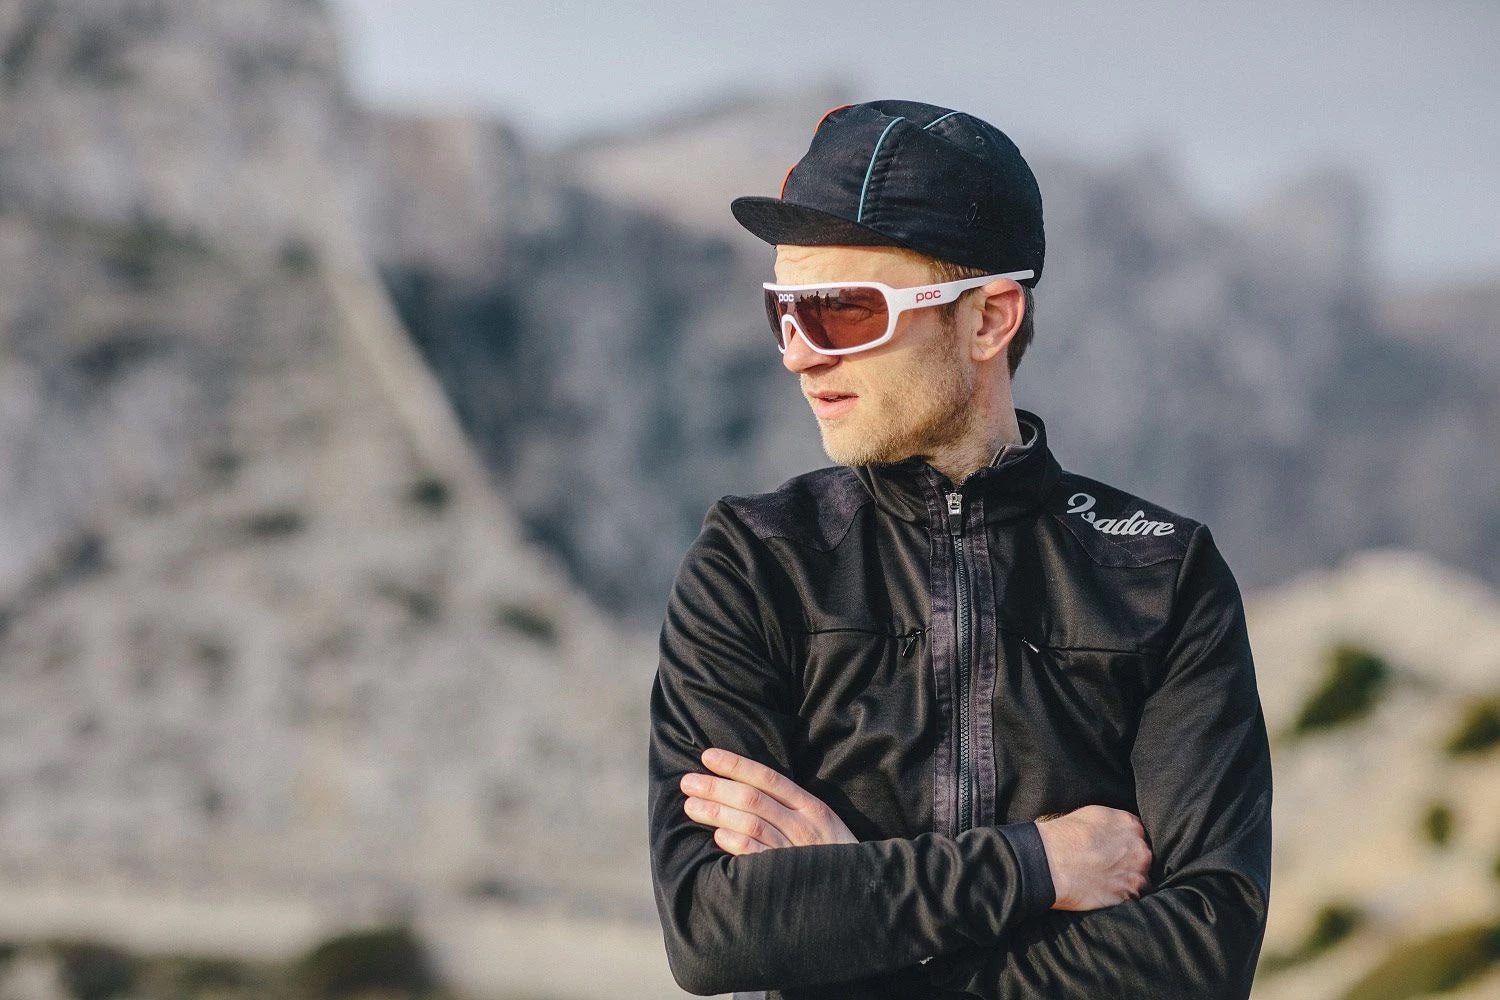 Winter cycling jacket with merino liner